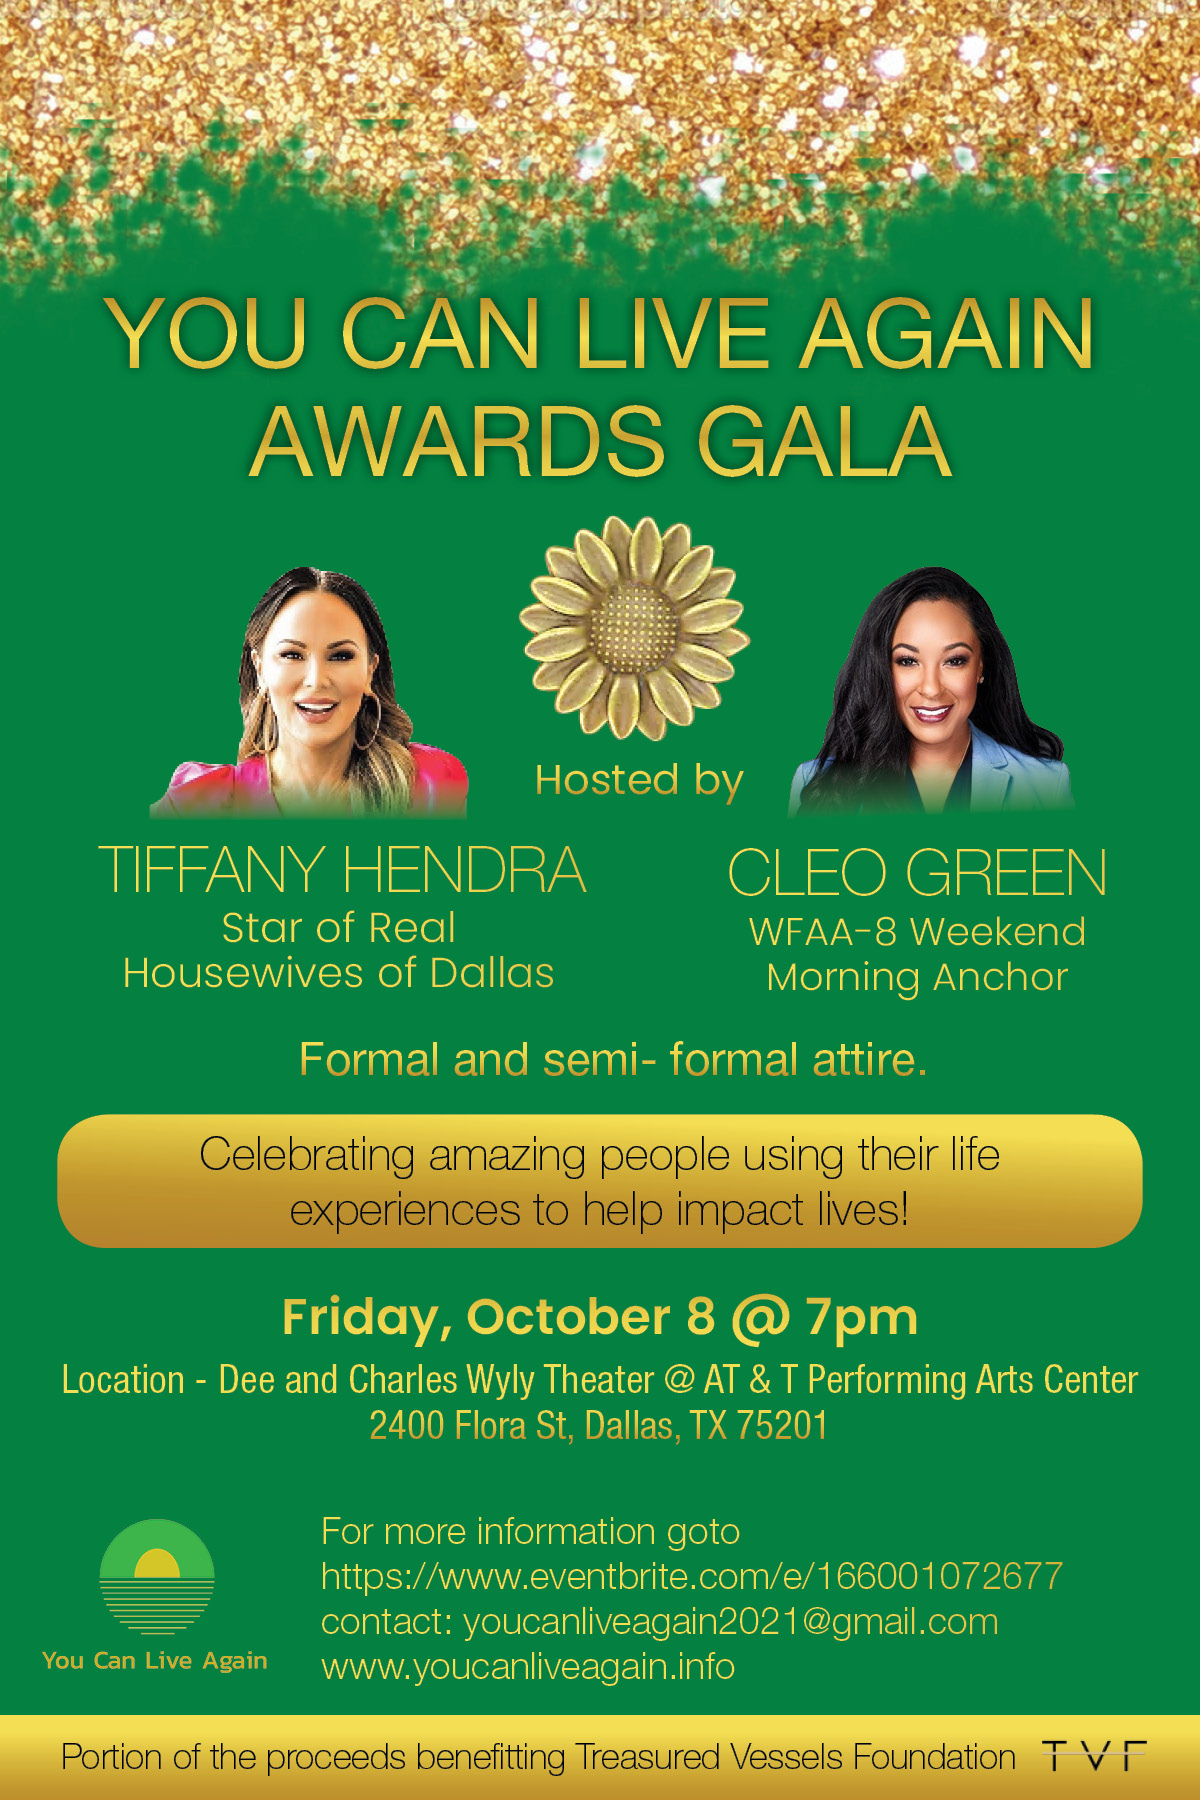 You Can Live Again Awards Gala 2021 Will Be Co-hosted by Tiffany Hendra of 'Real Housewives of Dallas' 6